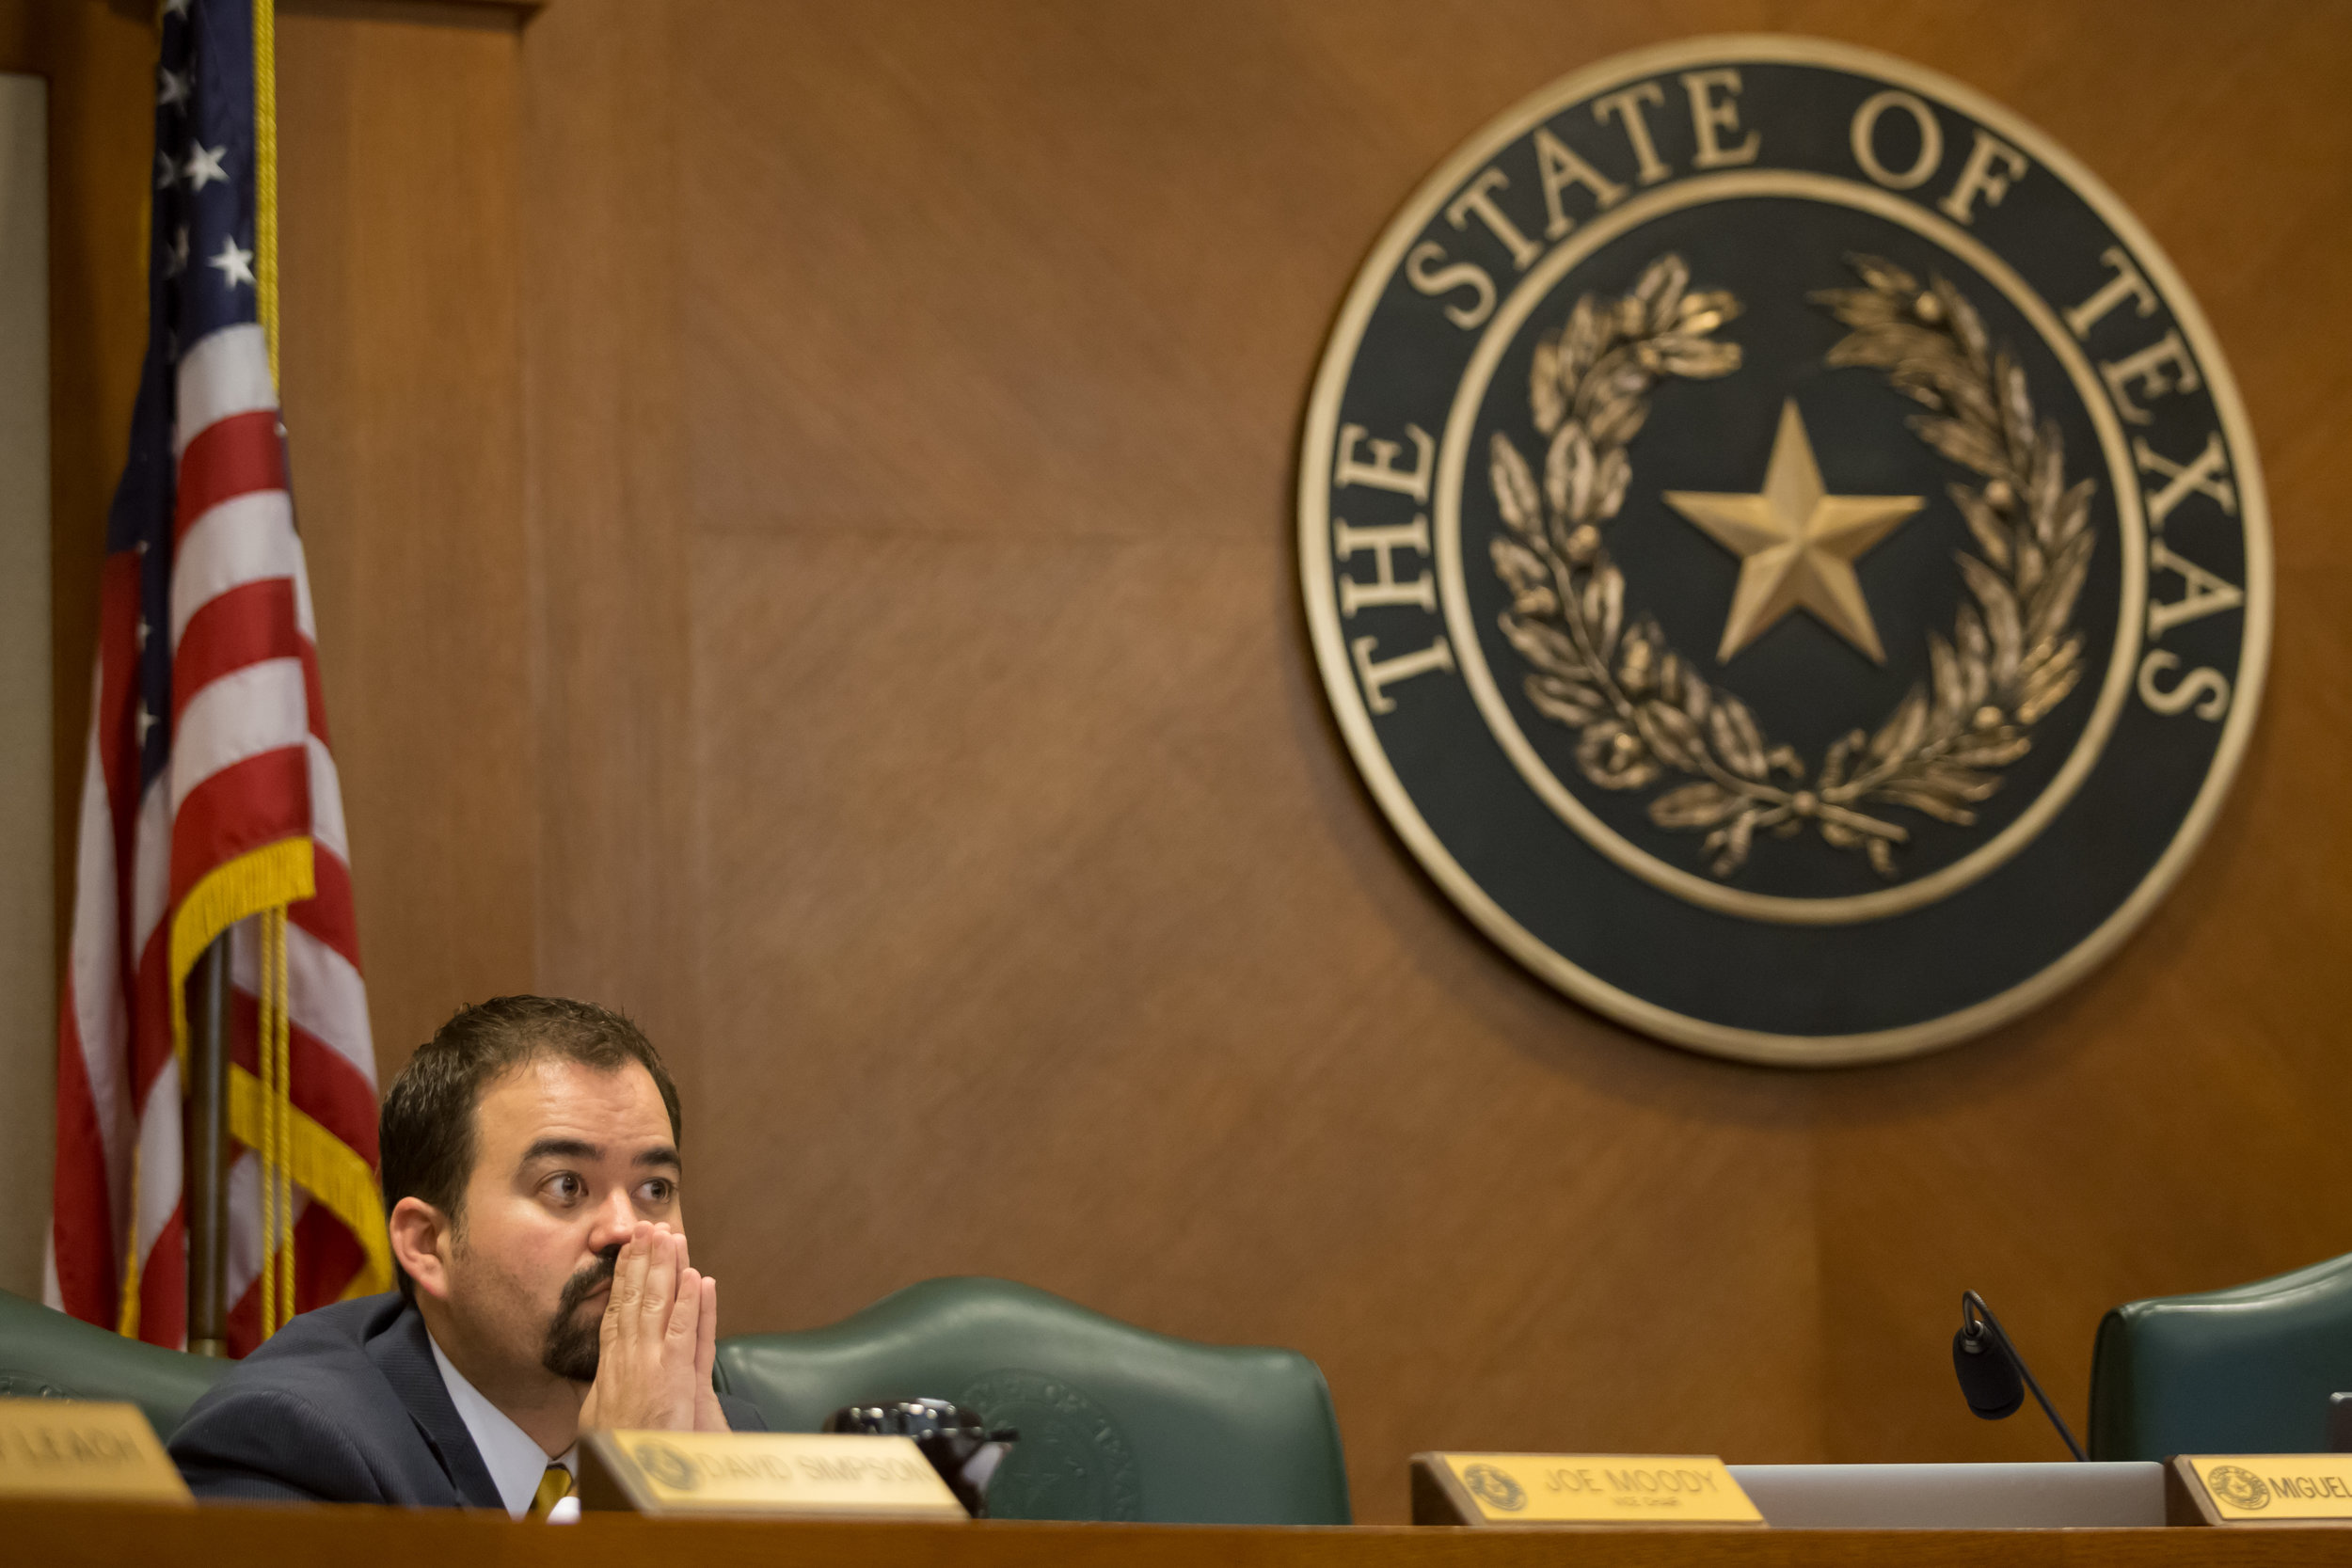 Texas State Representative Joe Moody takes a moment to himself in chambers.